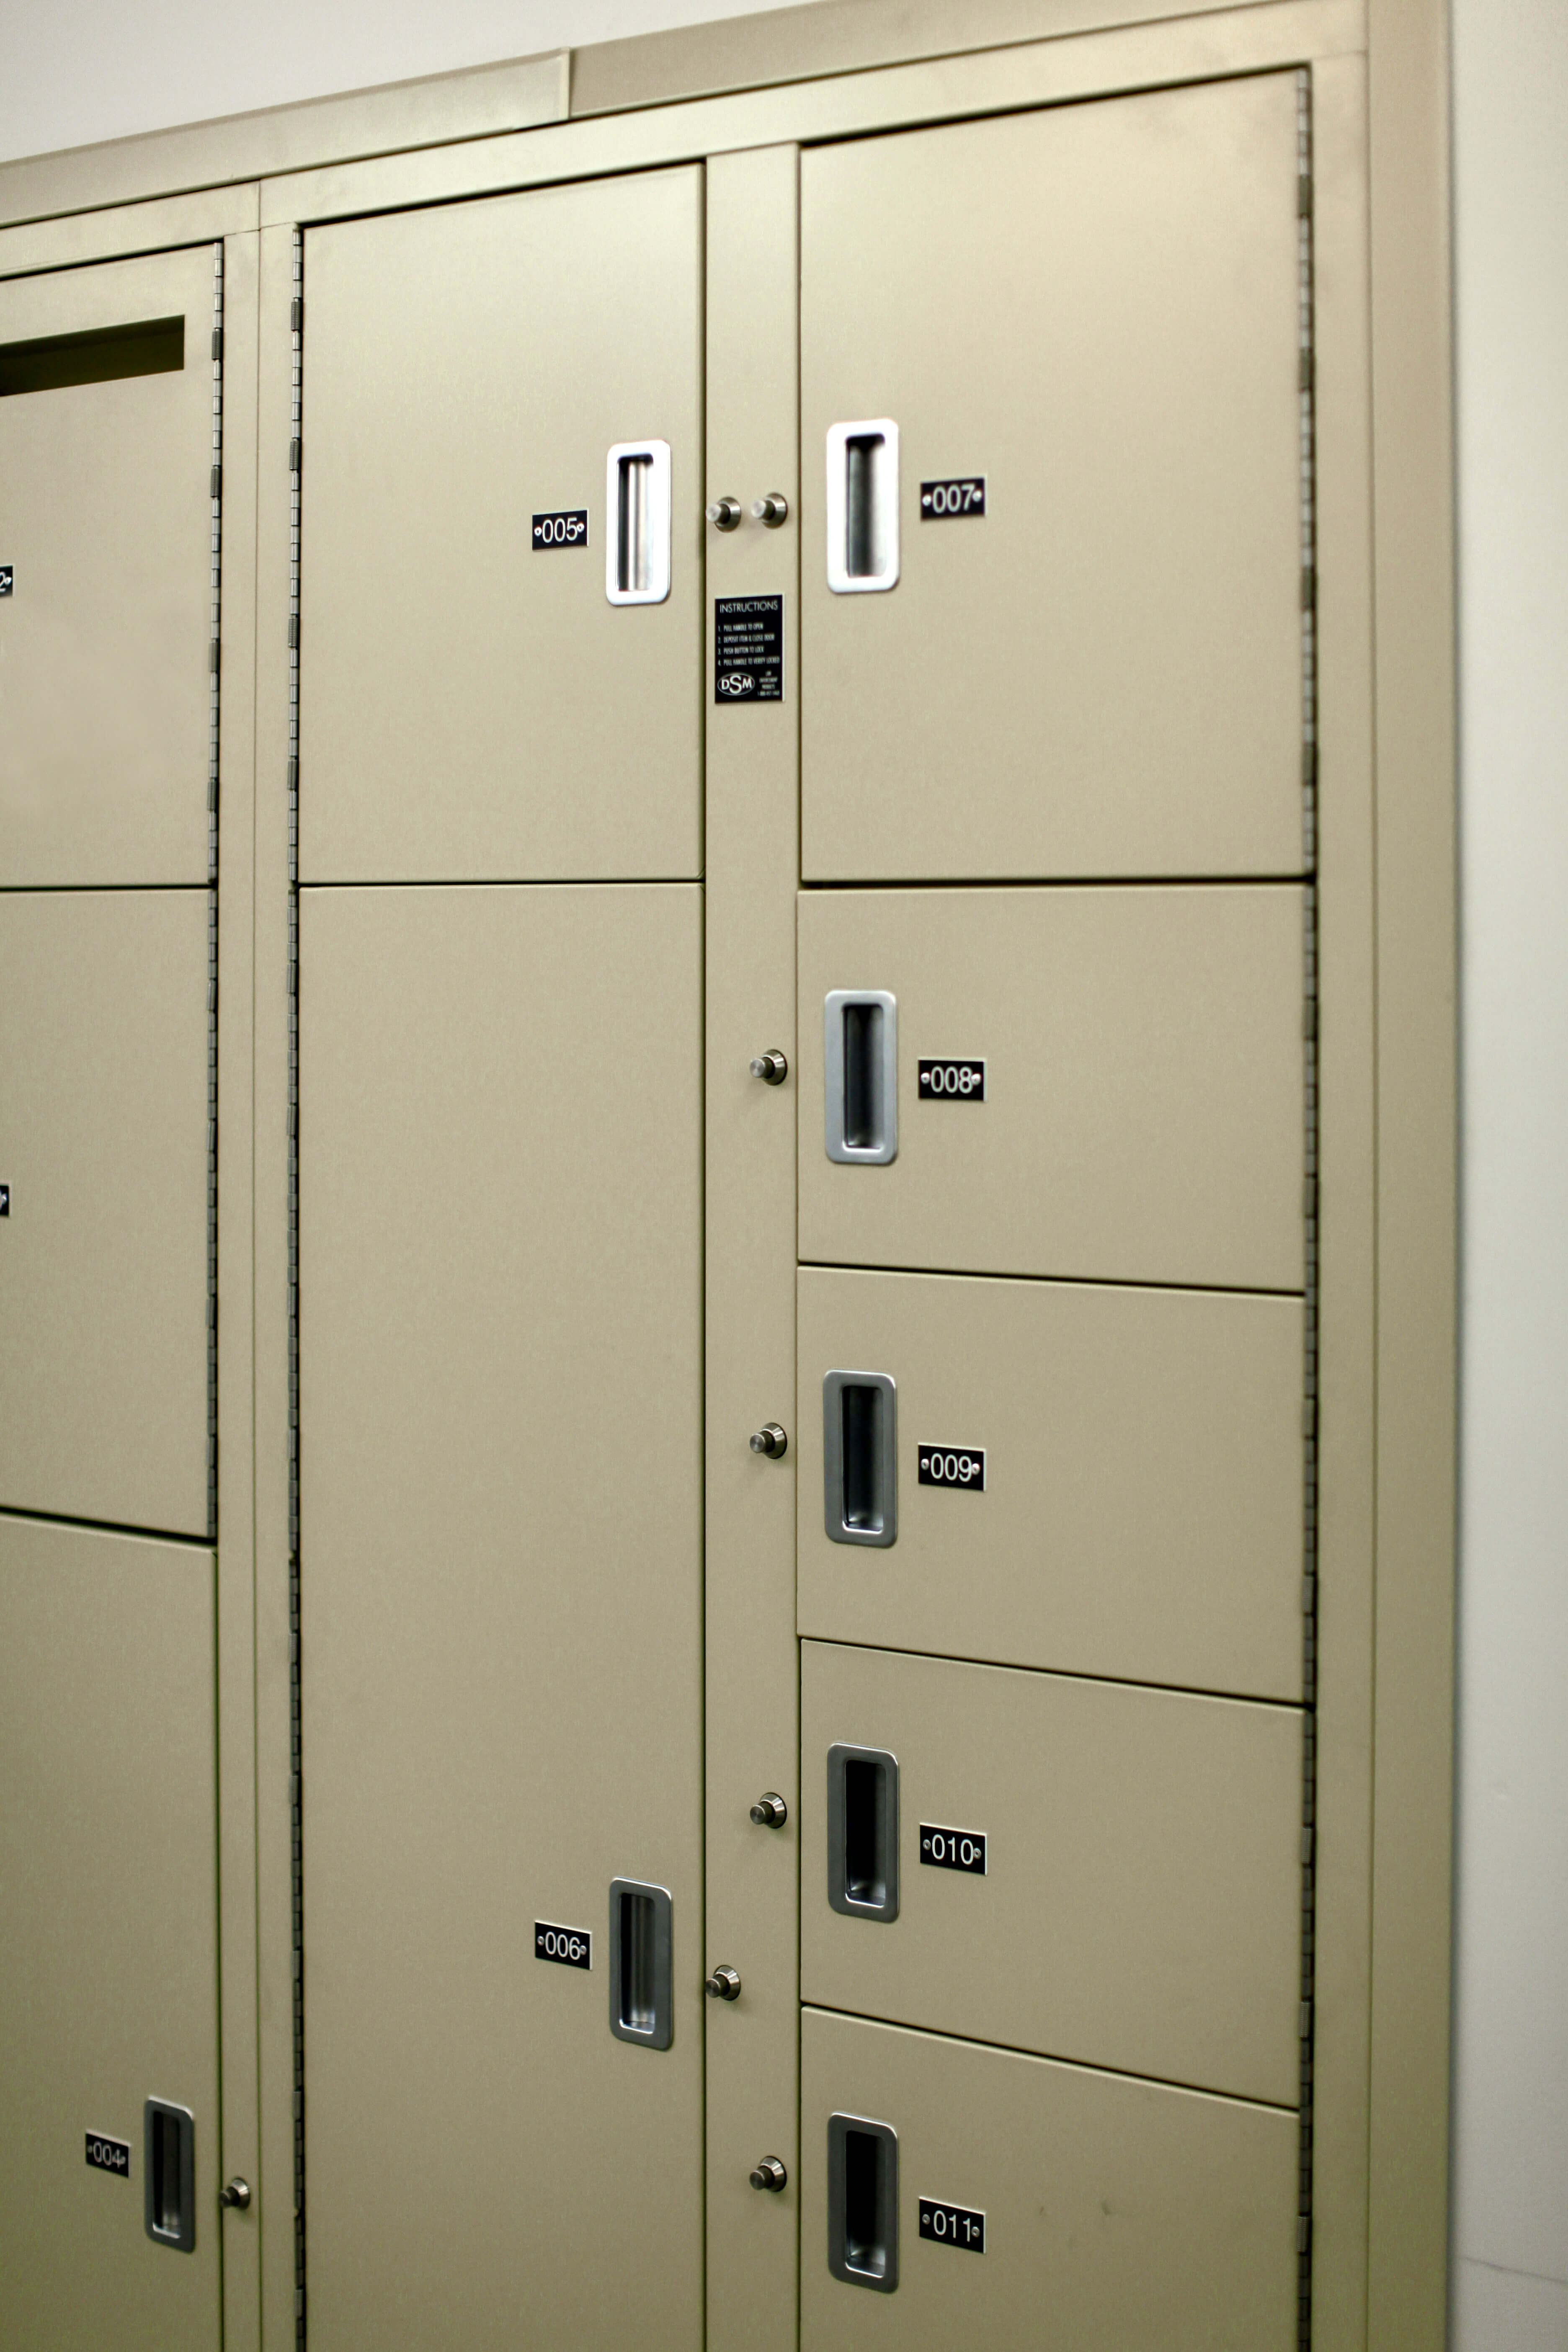 Short-term evidence storage at Bensalem Police Department